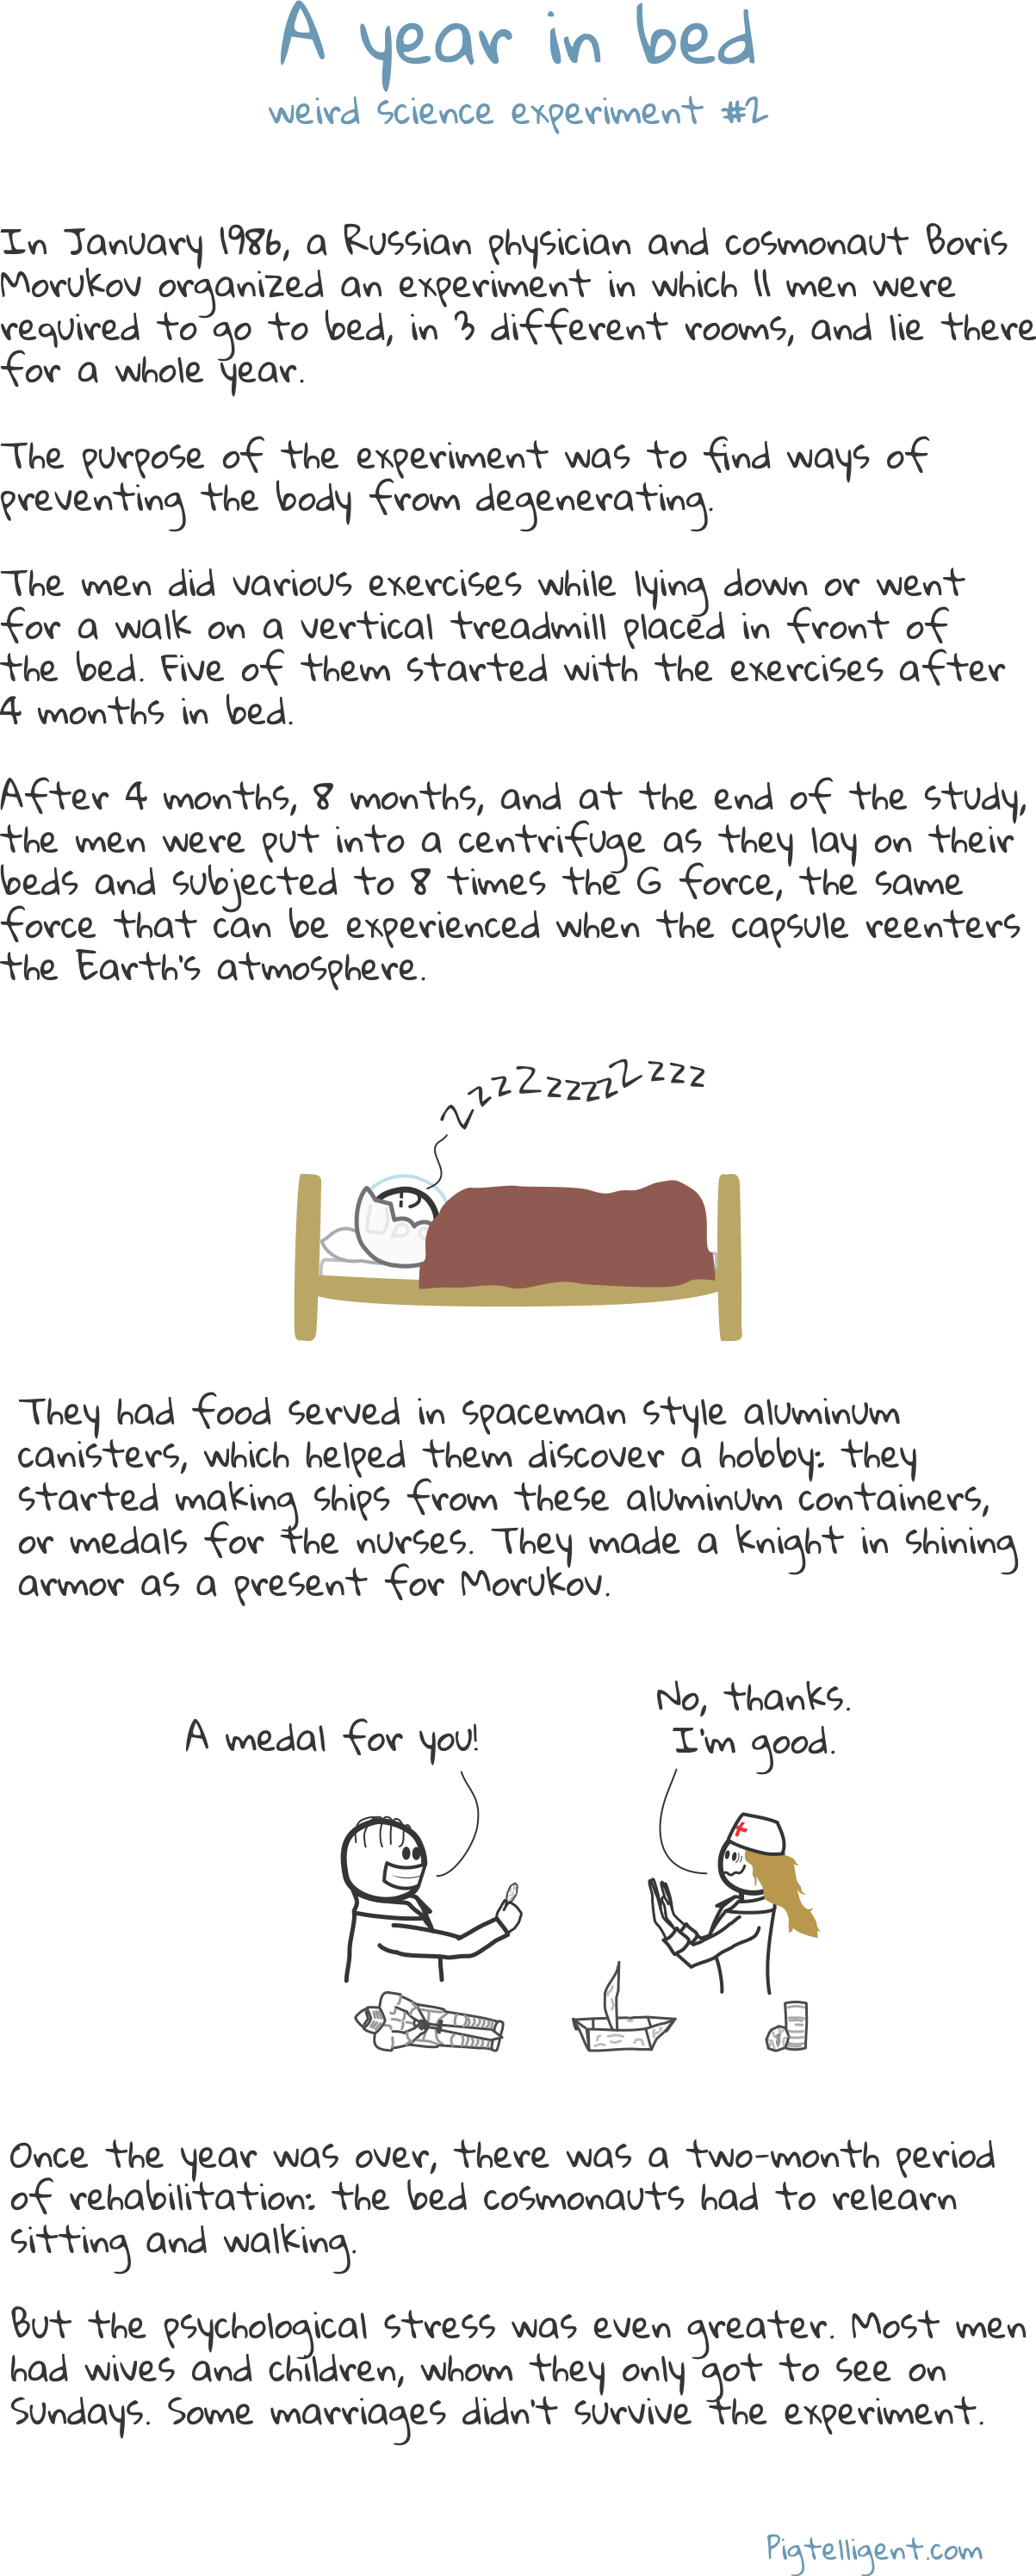 A year in bed - weird science experiment no. 2